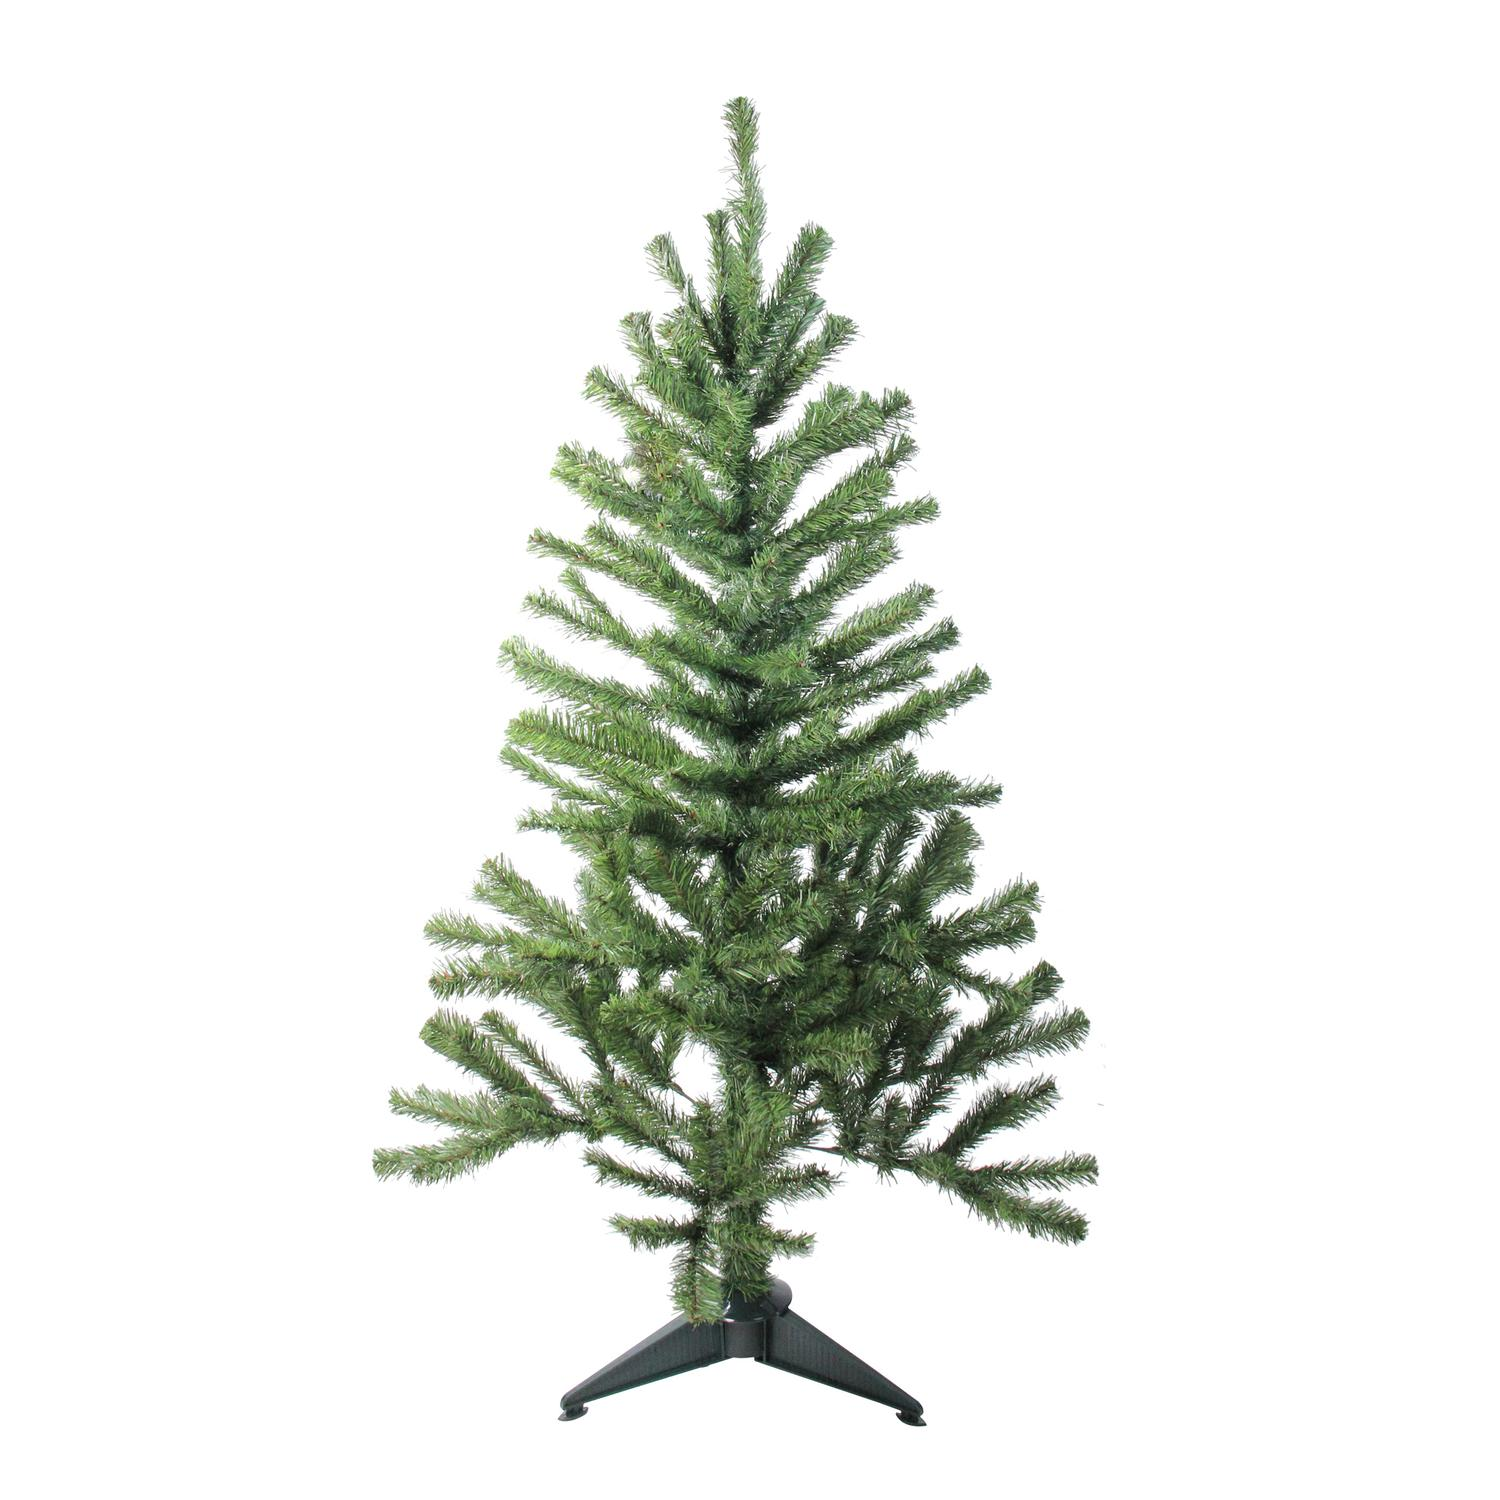 5' Canadian Pine Artificial Christmas Tree - Unlit - image 2 de 2